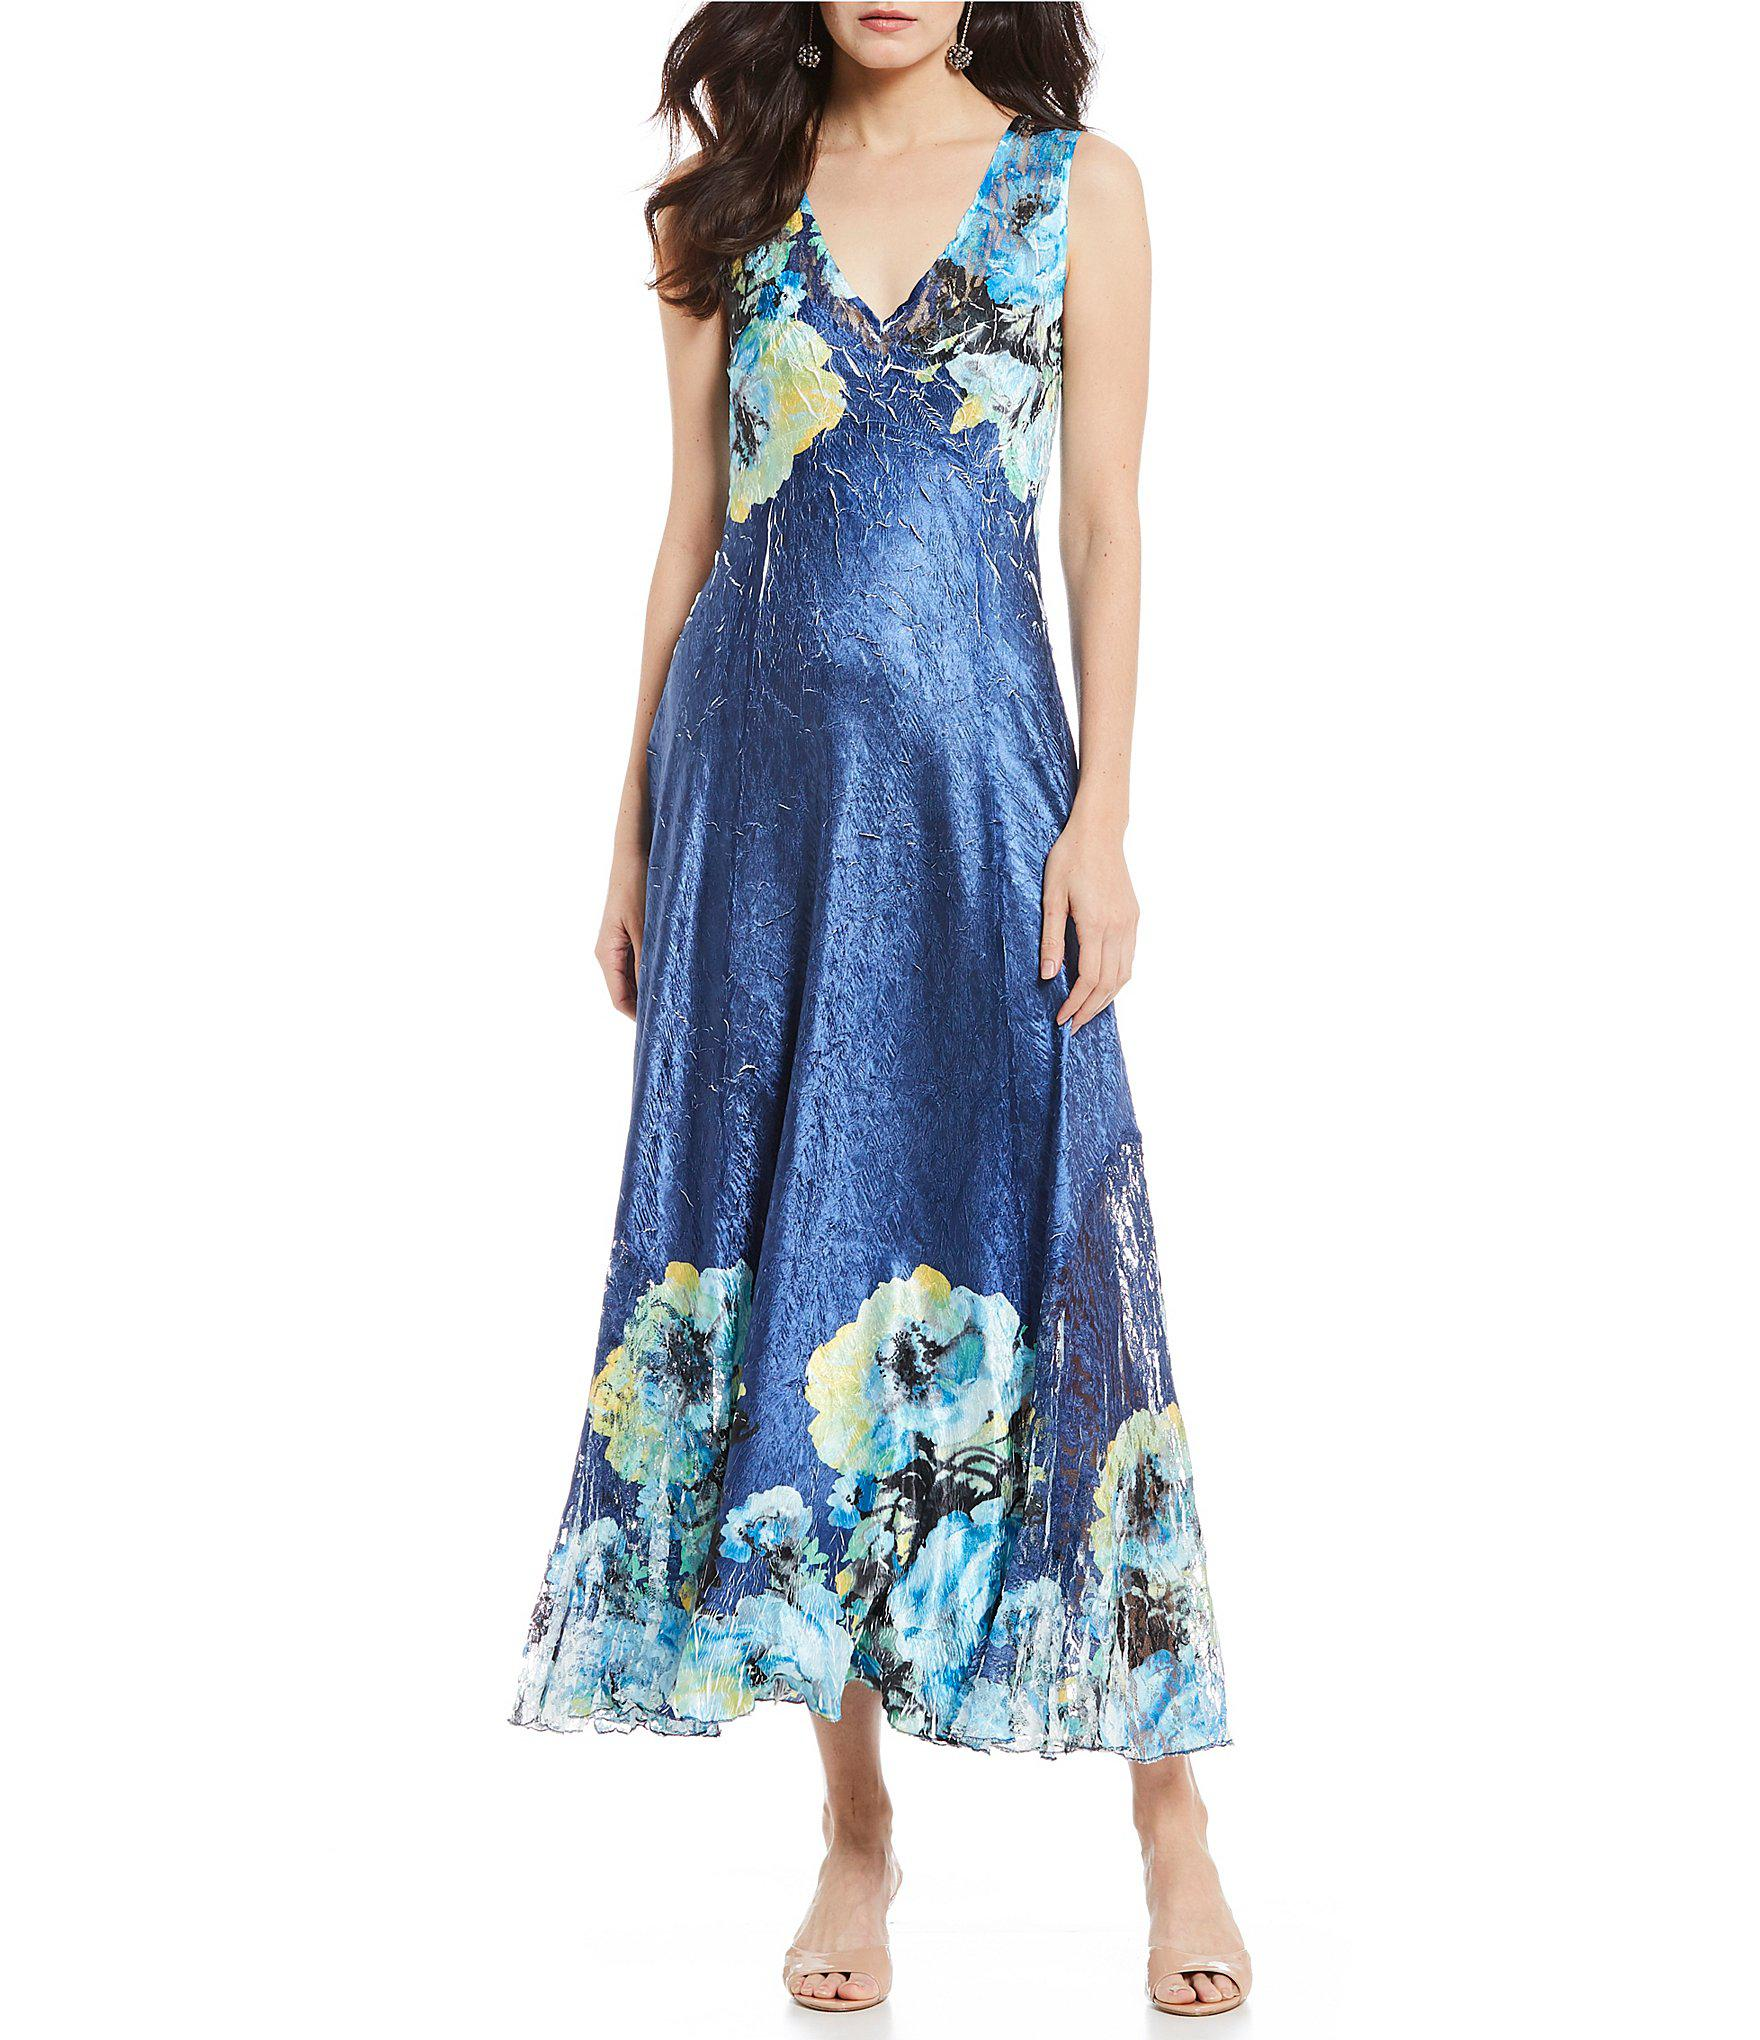 0e01e4153c Komarov - Blue V-neck Floral Print Long Midi Dress - Lyst. View fullscreen